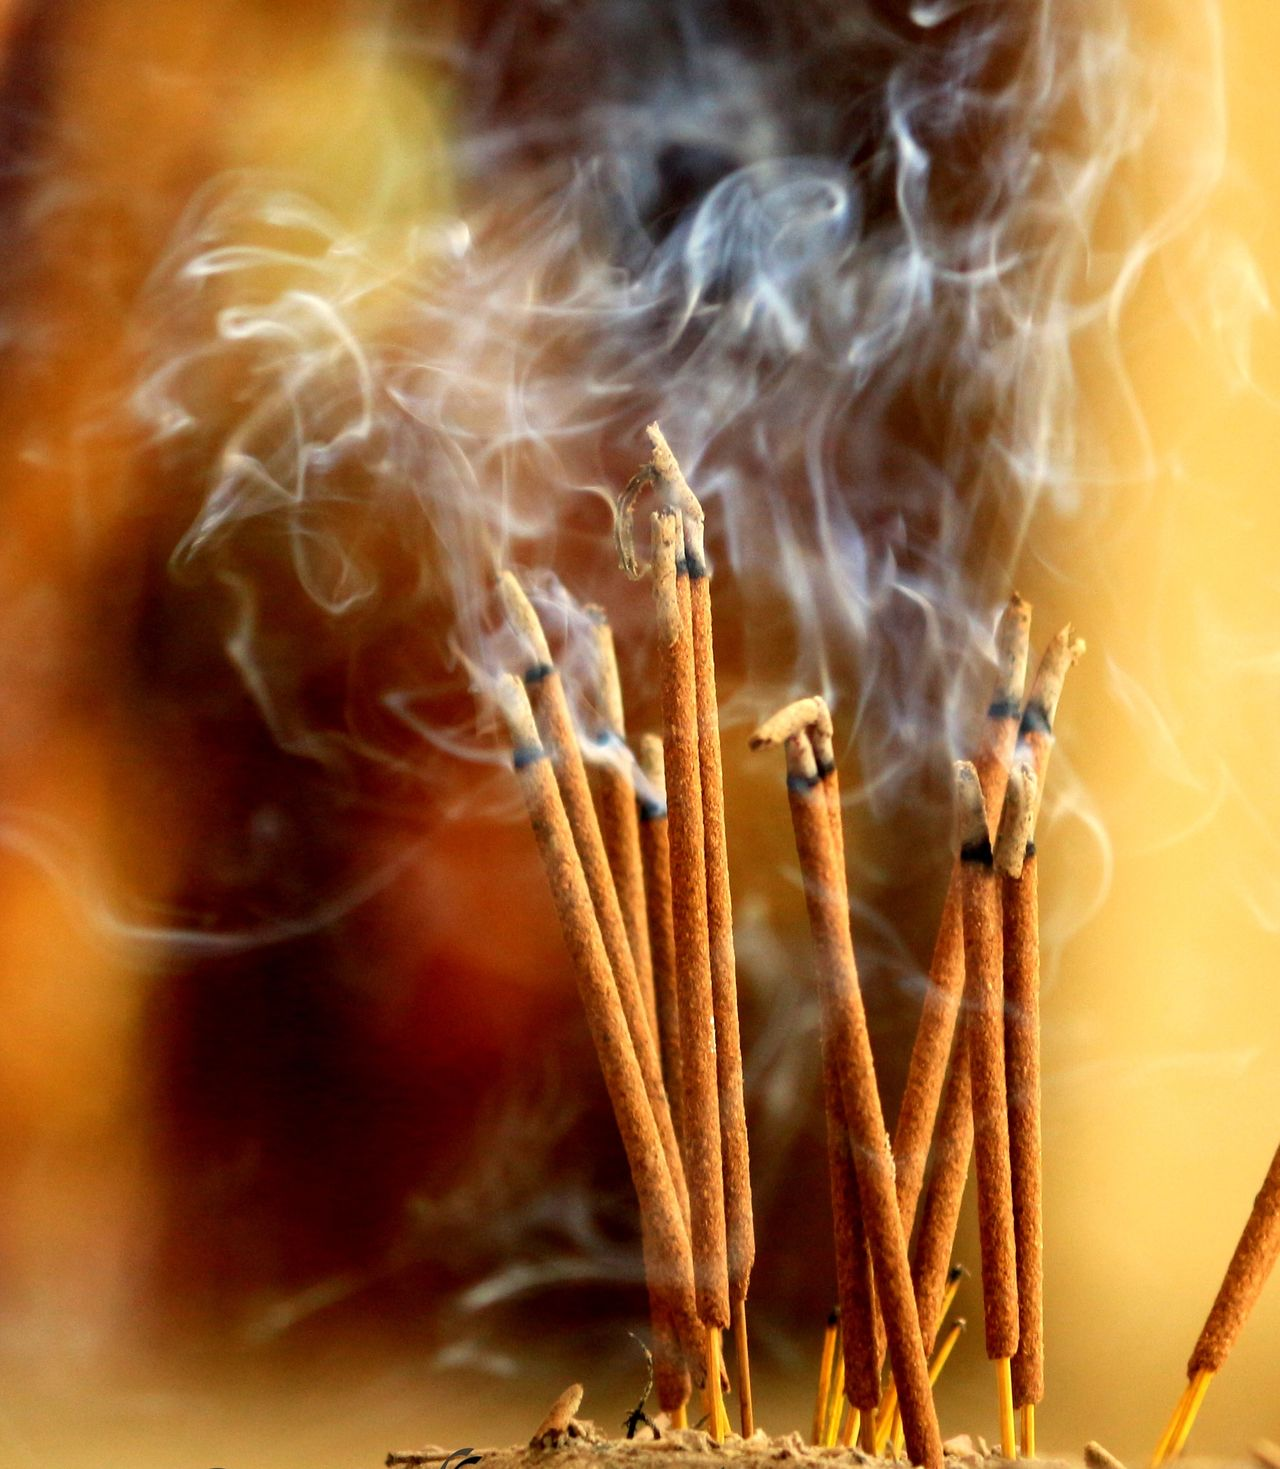 Beauty In Nature Burning Close-up Day Faith Fragility Gragonfly Gragrance No People Religion Religion And Beliefs Smoke - Physical Structure Temple